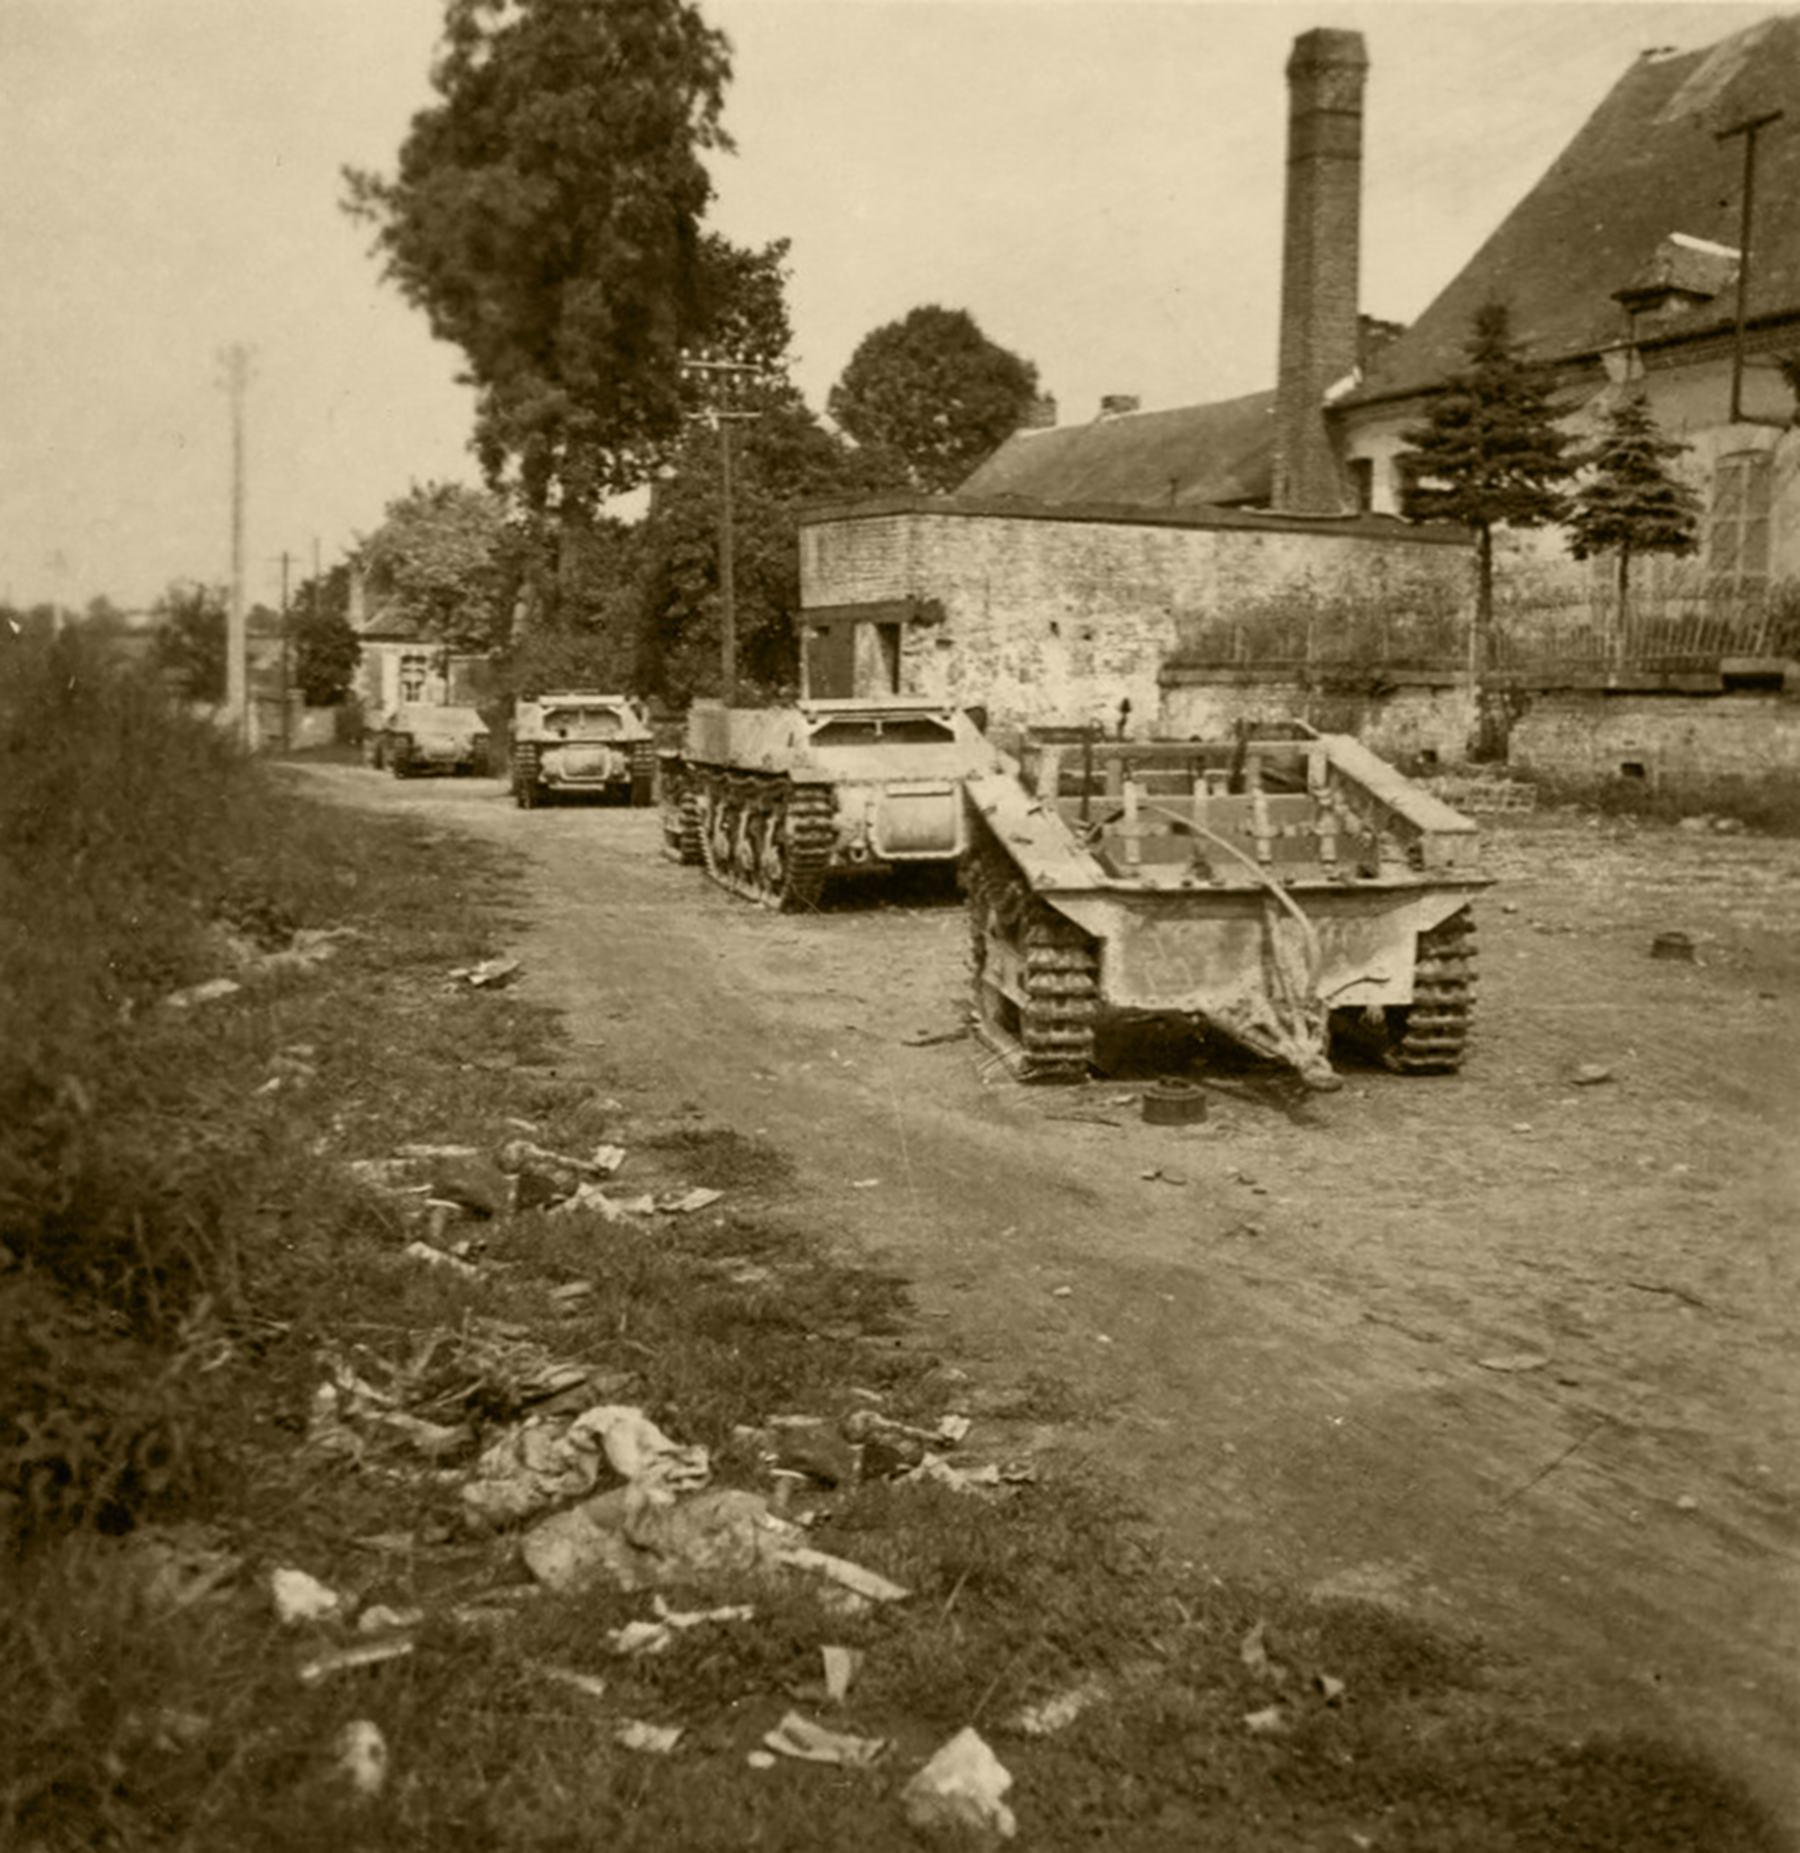 French tanks destroyed during the battle of France 1940 ebay 01